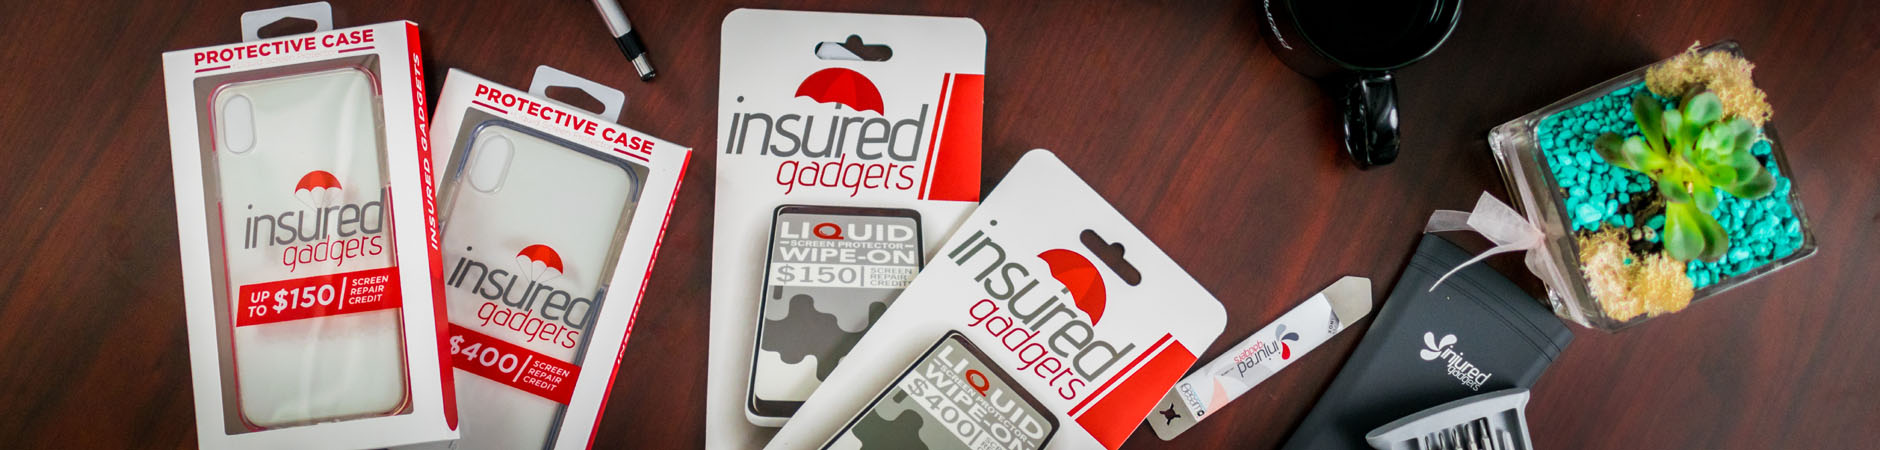 Insured Gadgets is finally here!